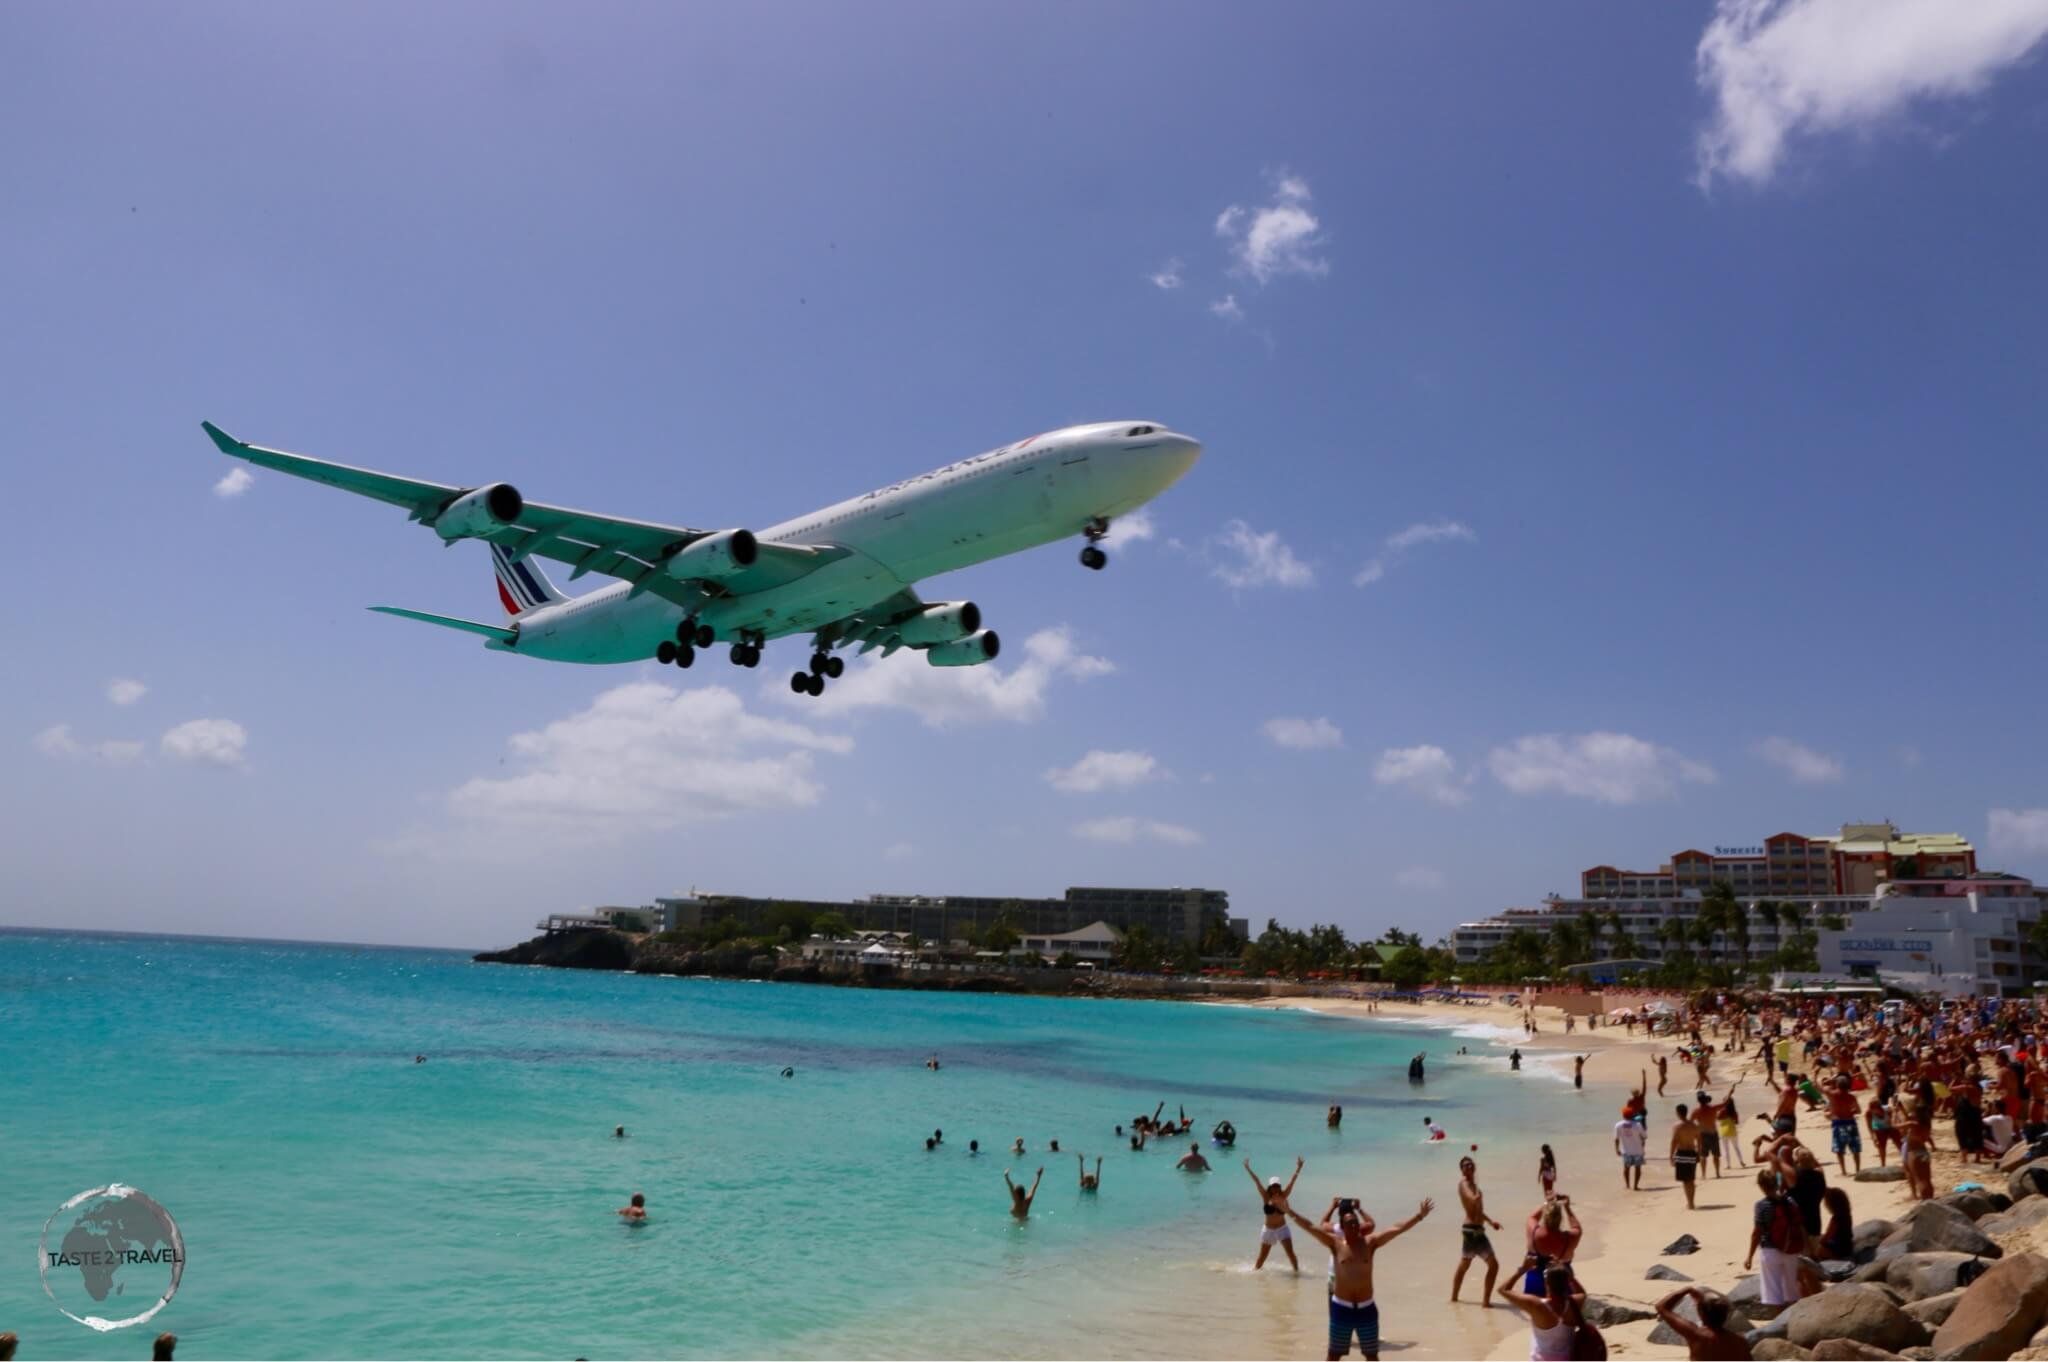 Air France flight arriving on St. Martin. All flights approach low over the popular Maho Beach.